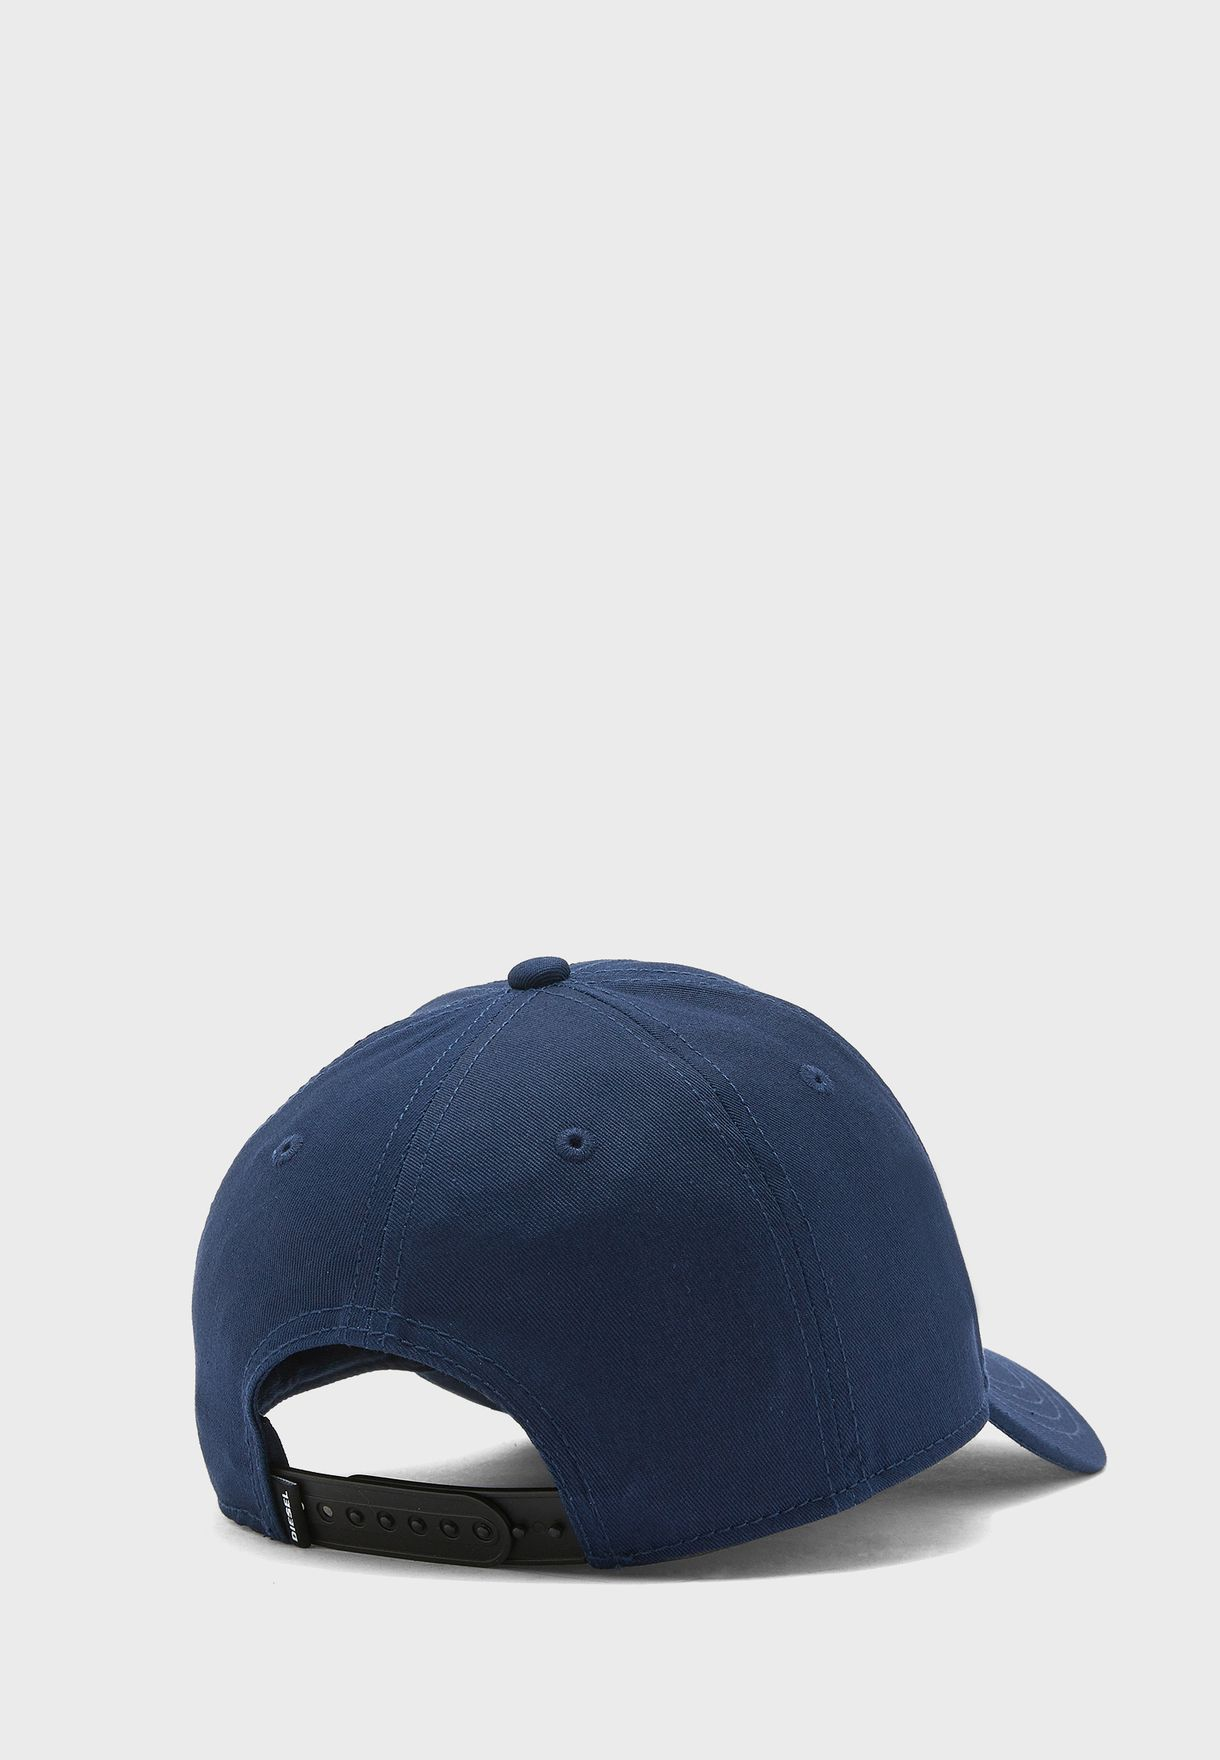 Corry Curved Peak Cap